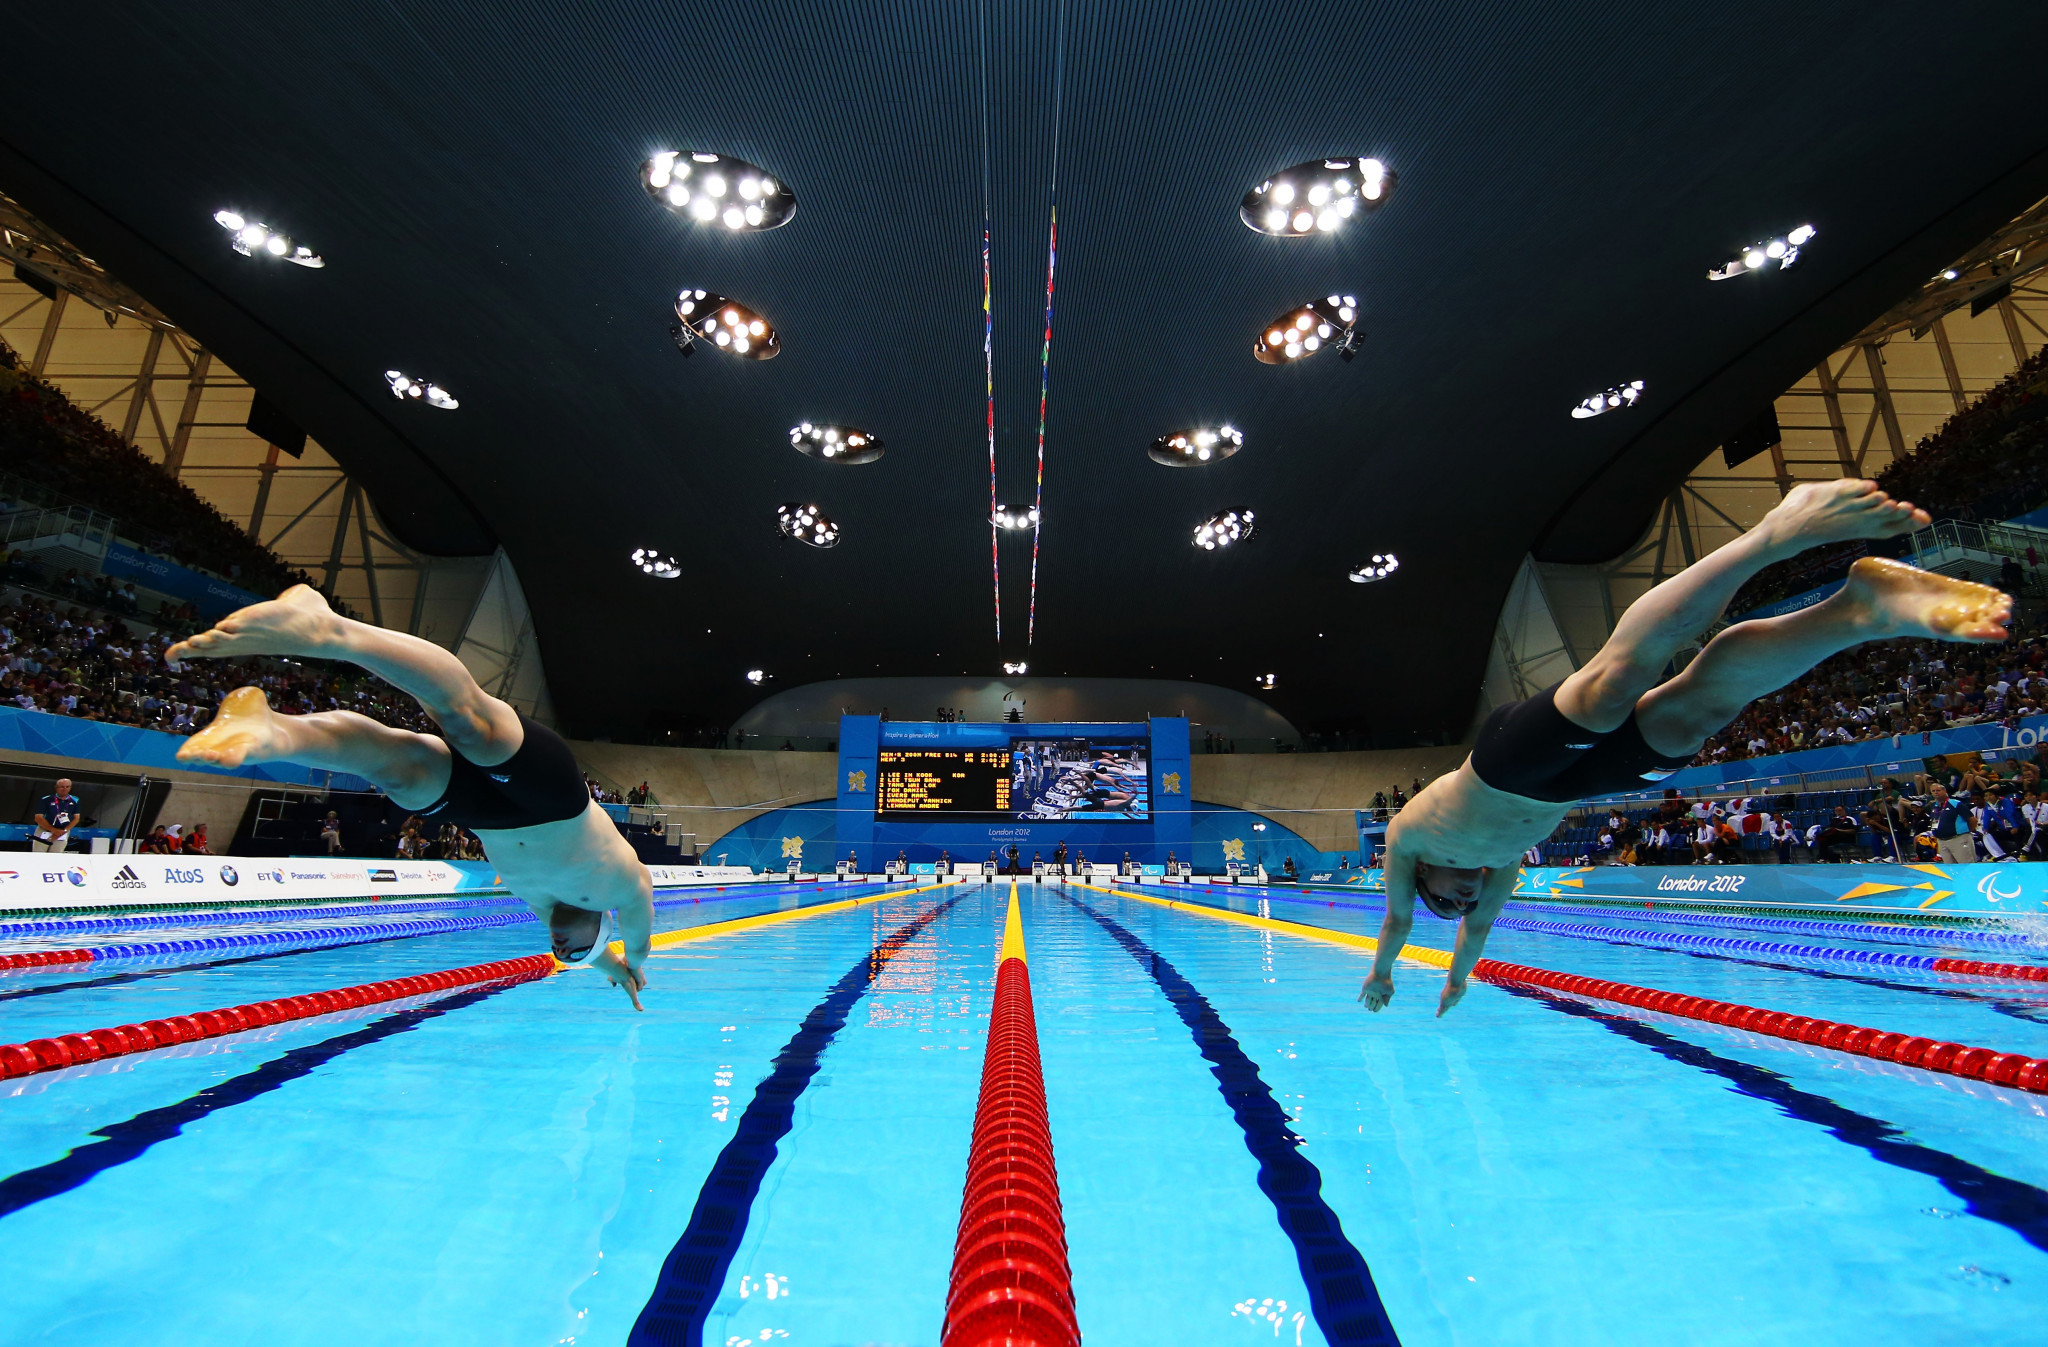 Intellectual disability events were reintroduced at the London 2012 Paralympic Games ©Getty Images